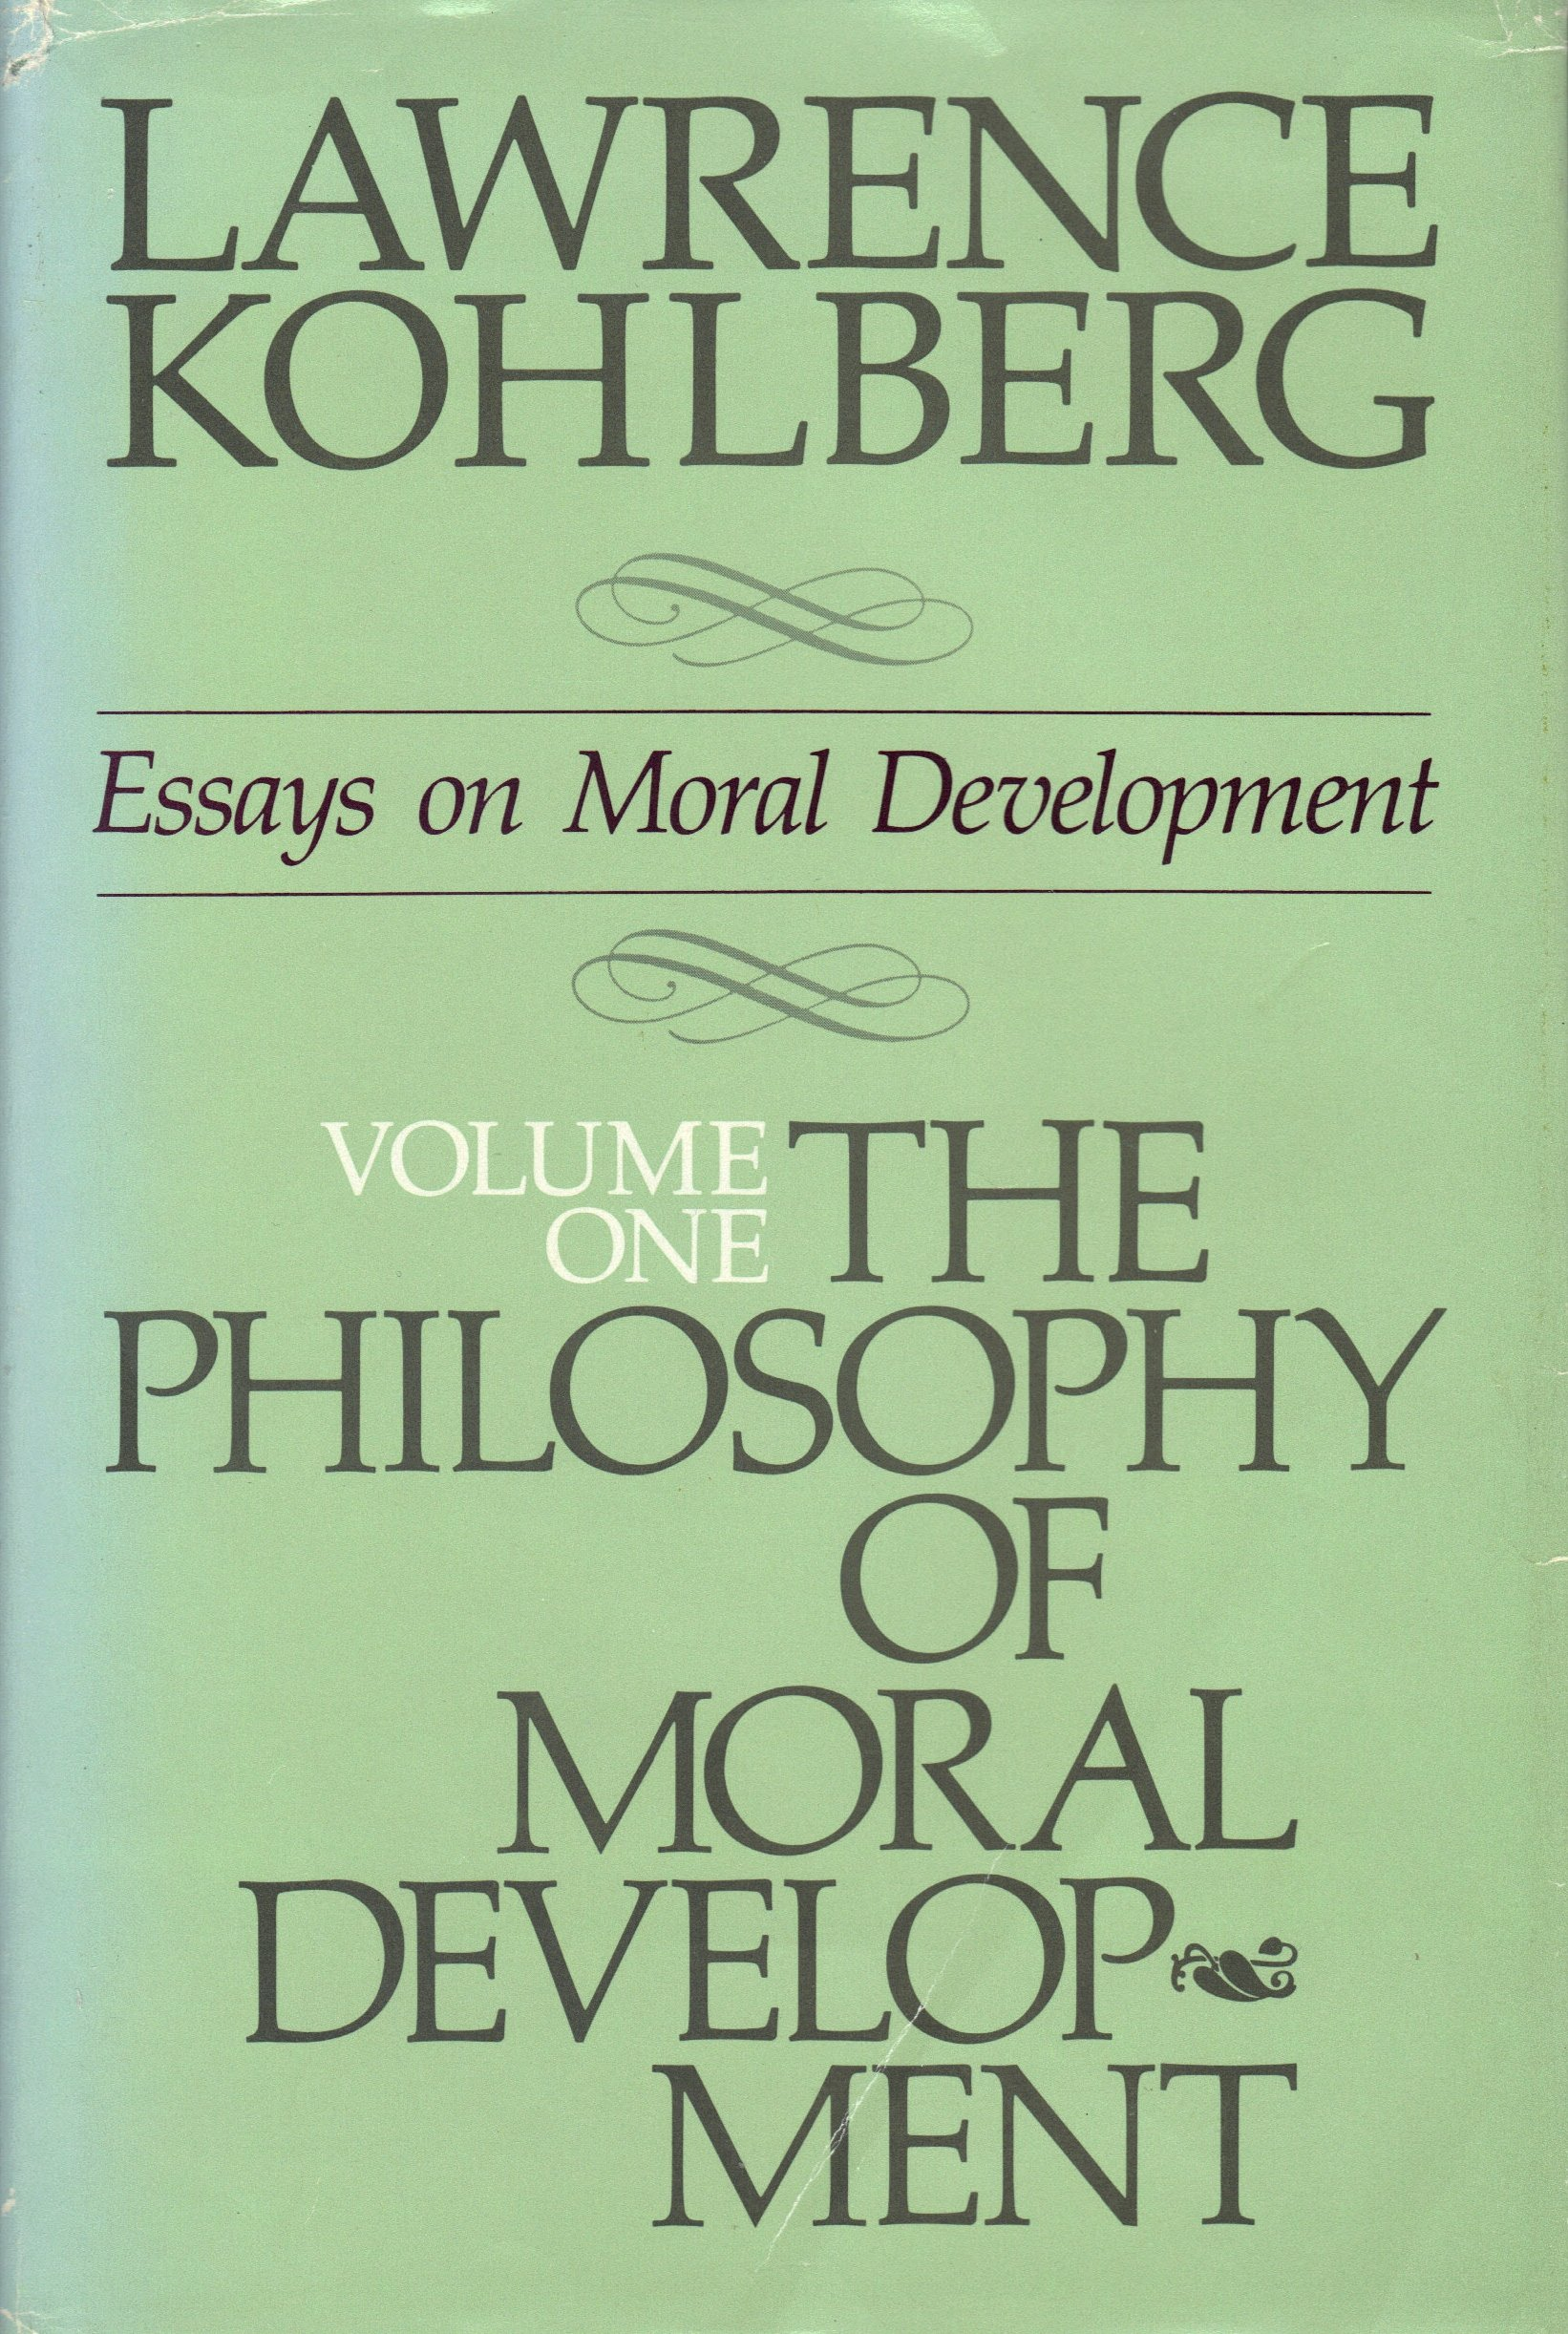 the philosophy of moral development moral stages and the idea of the philosophy of moral development moral stages and the idea of justice essays on moral development volume 1 lawrence kohlberg 9780060647605